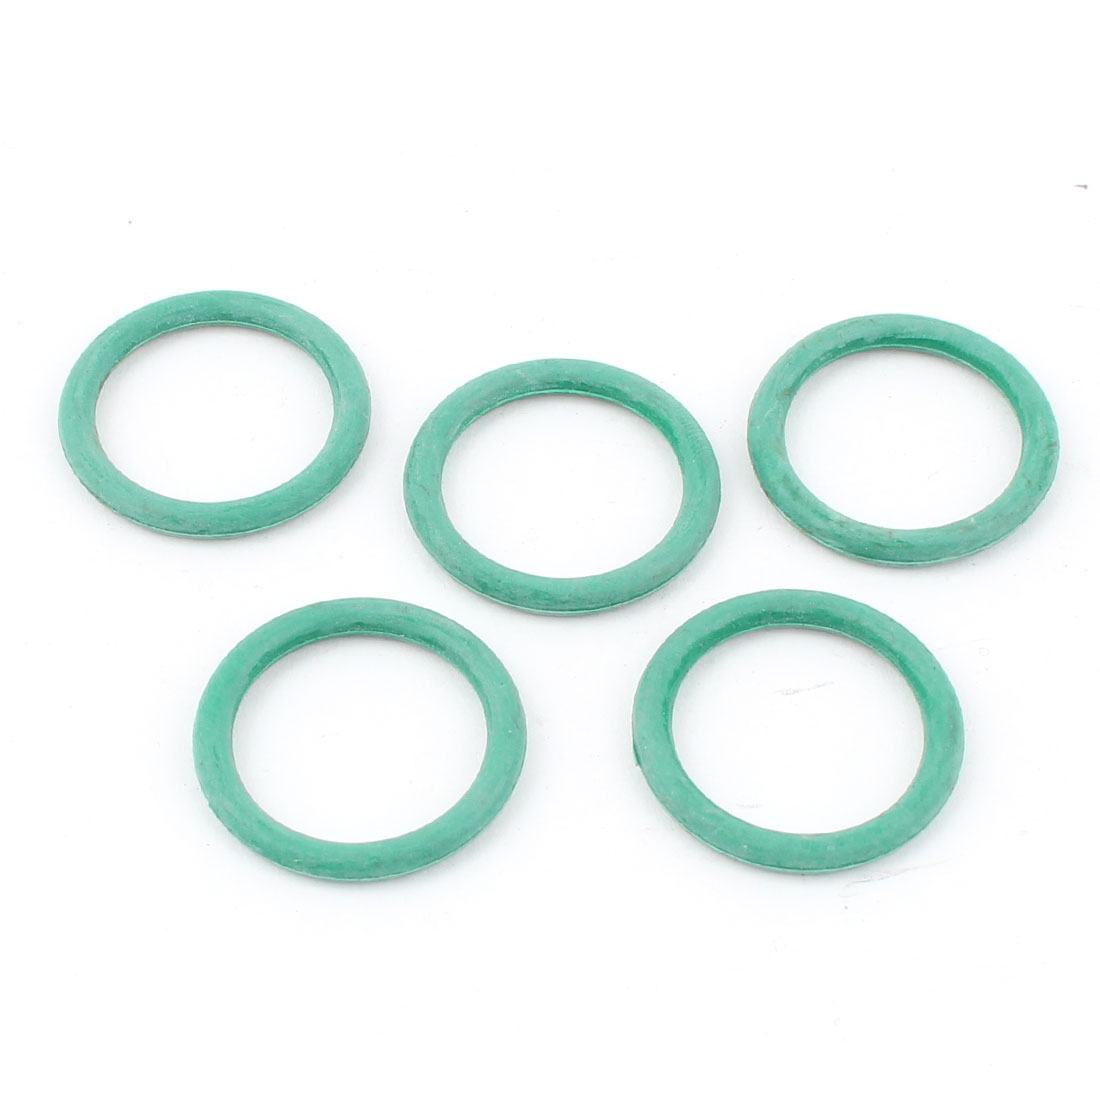 5 Pcs Rubber O Ring Oil Seal Gaskets Green for Makita HM0810 Electric Pick Gun